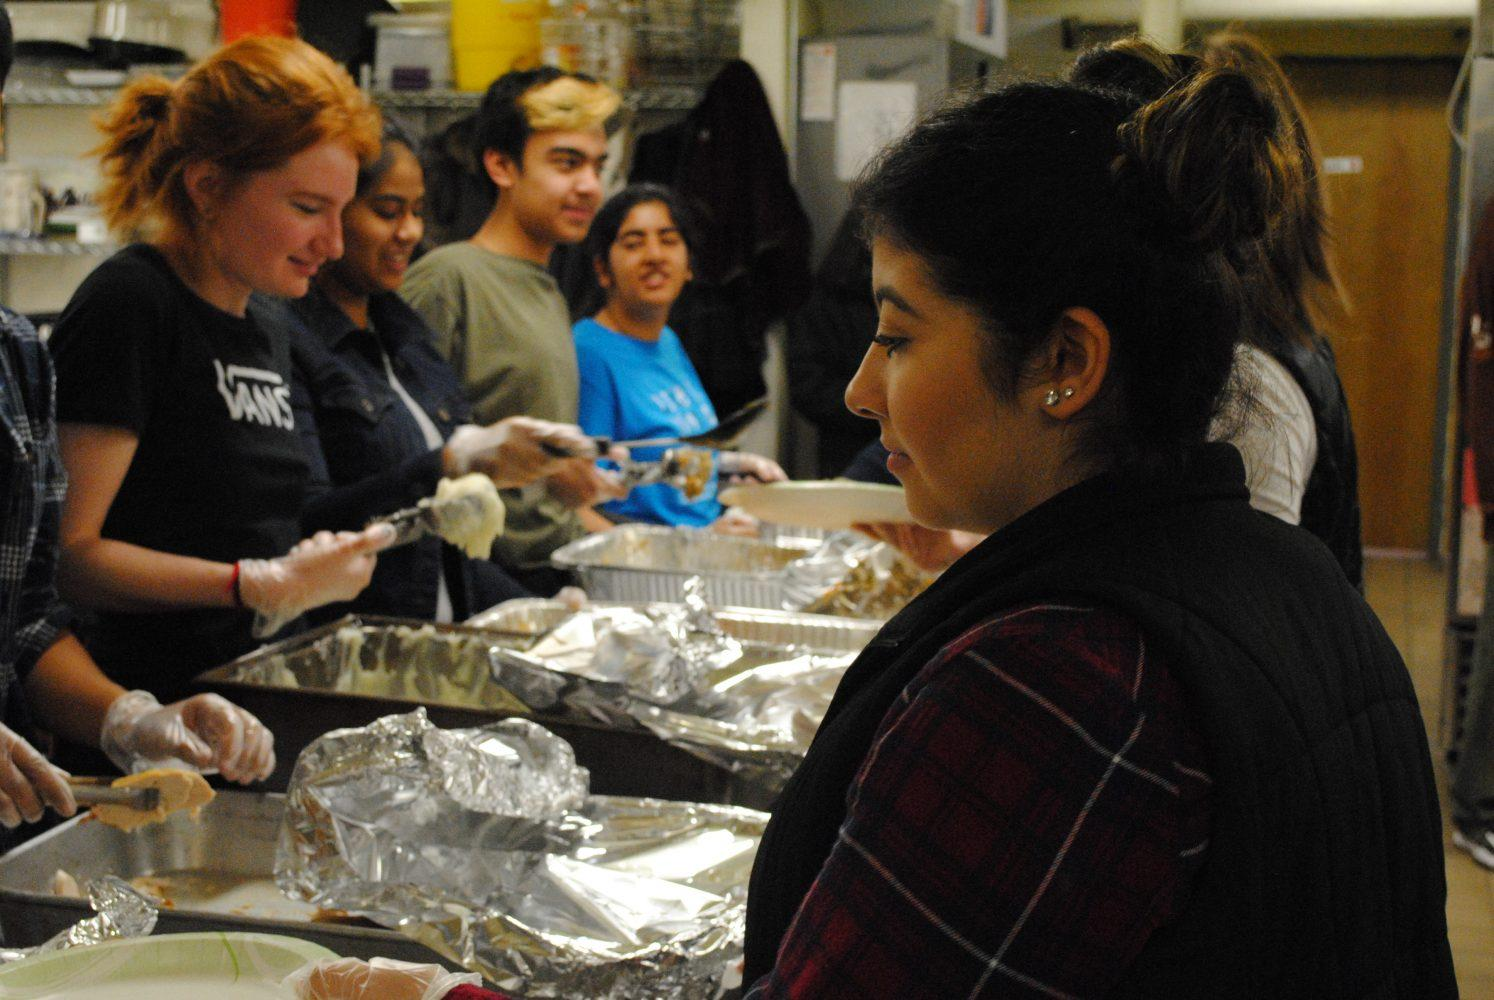 Soup at Six: A new outlook on soup kitchens